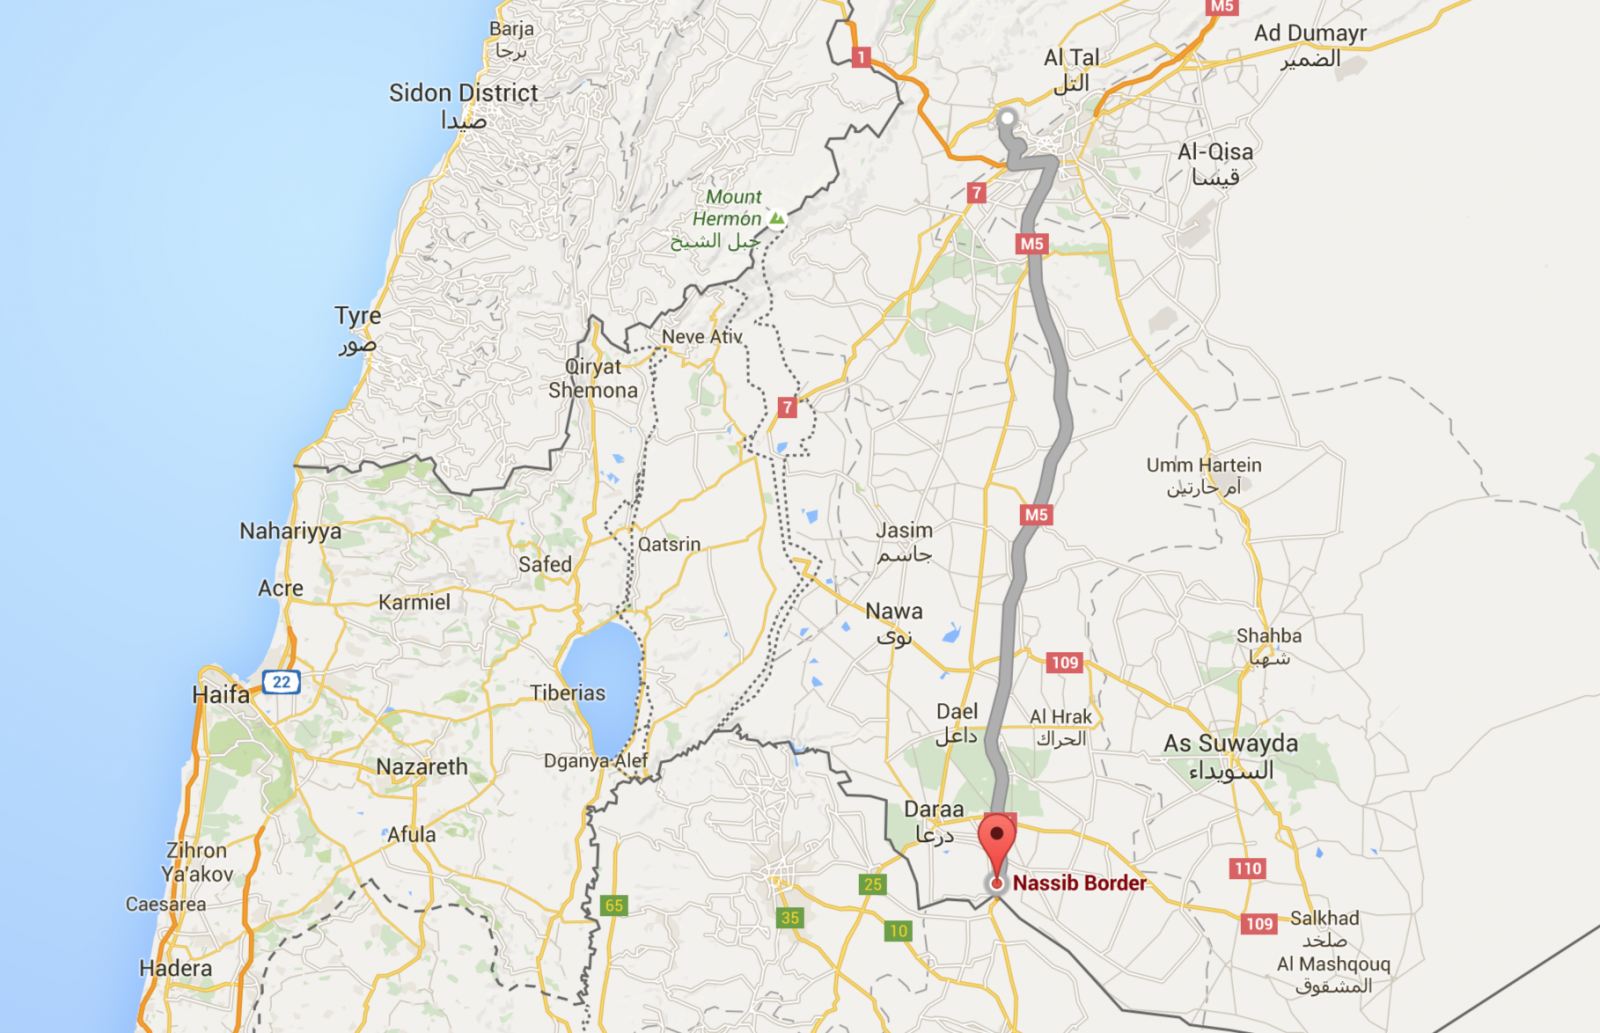 Route taken by Somar Kreker from his hometown of Qudssaya, Syria, to the Jordanian Border